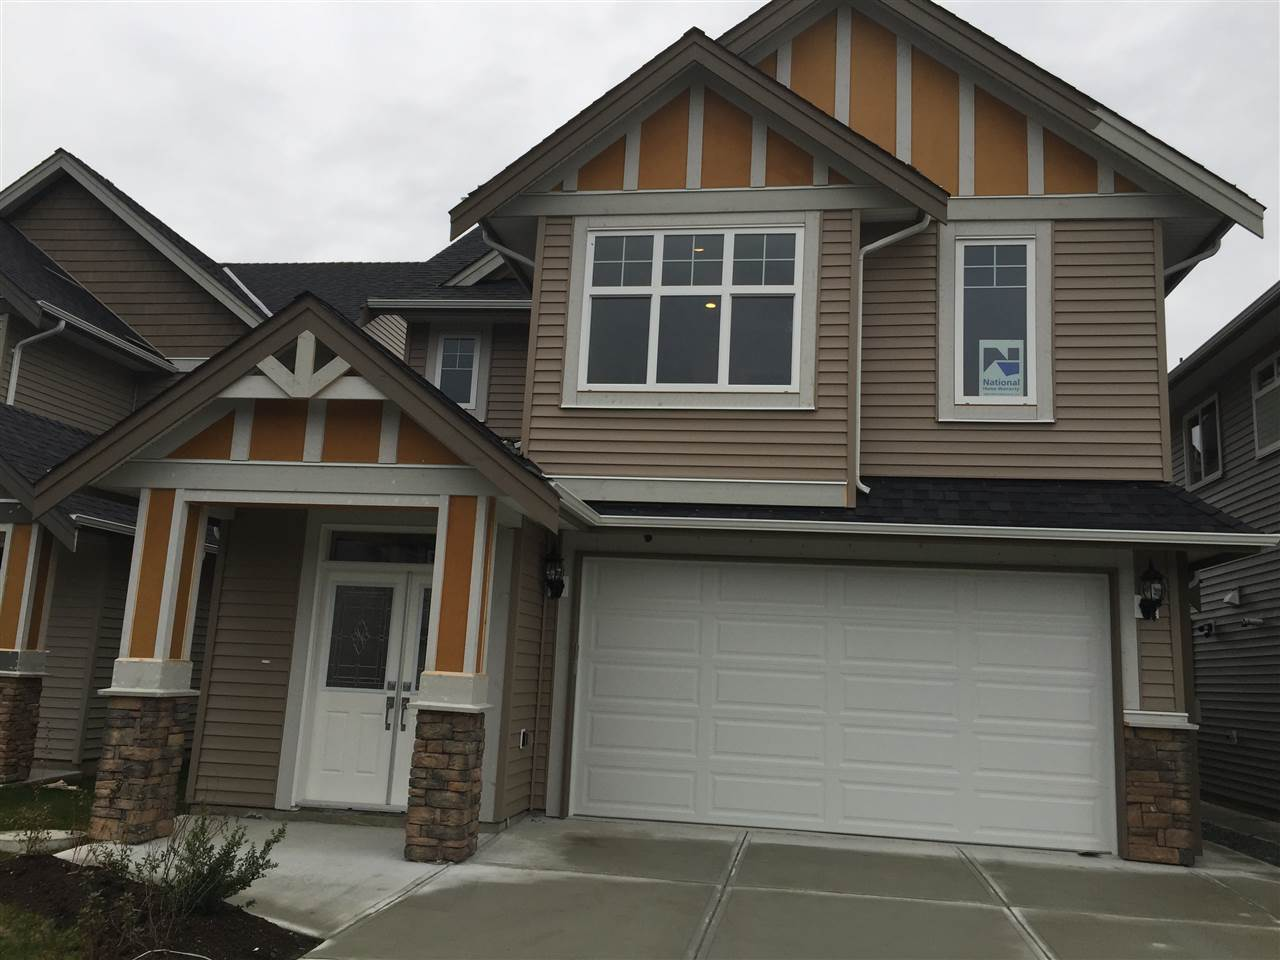 Main Photo: 34846 MCMILLAN Place in Abbotsford: Abbotsford East House for sale : MLS® # R2147595